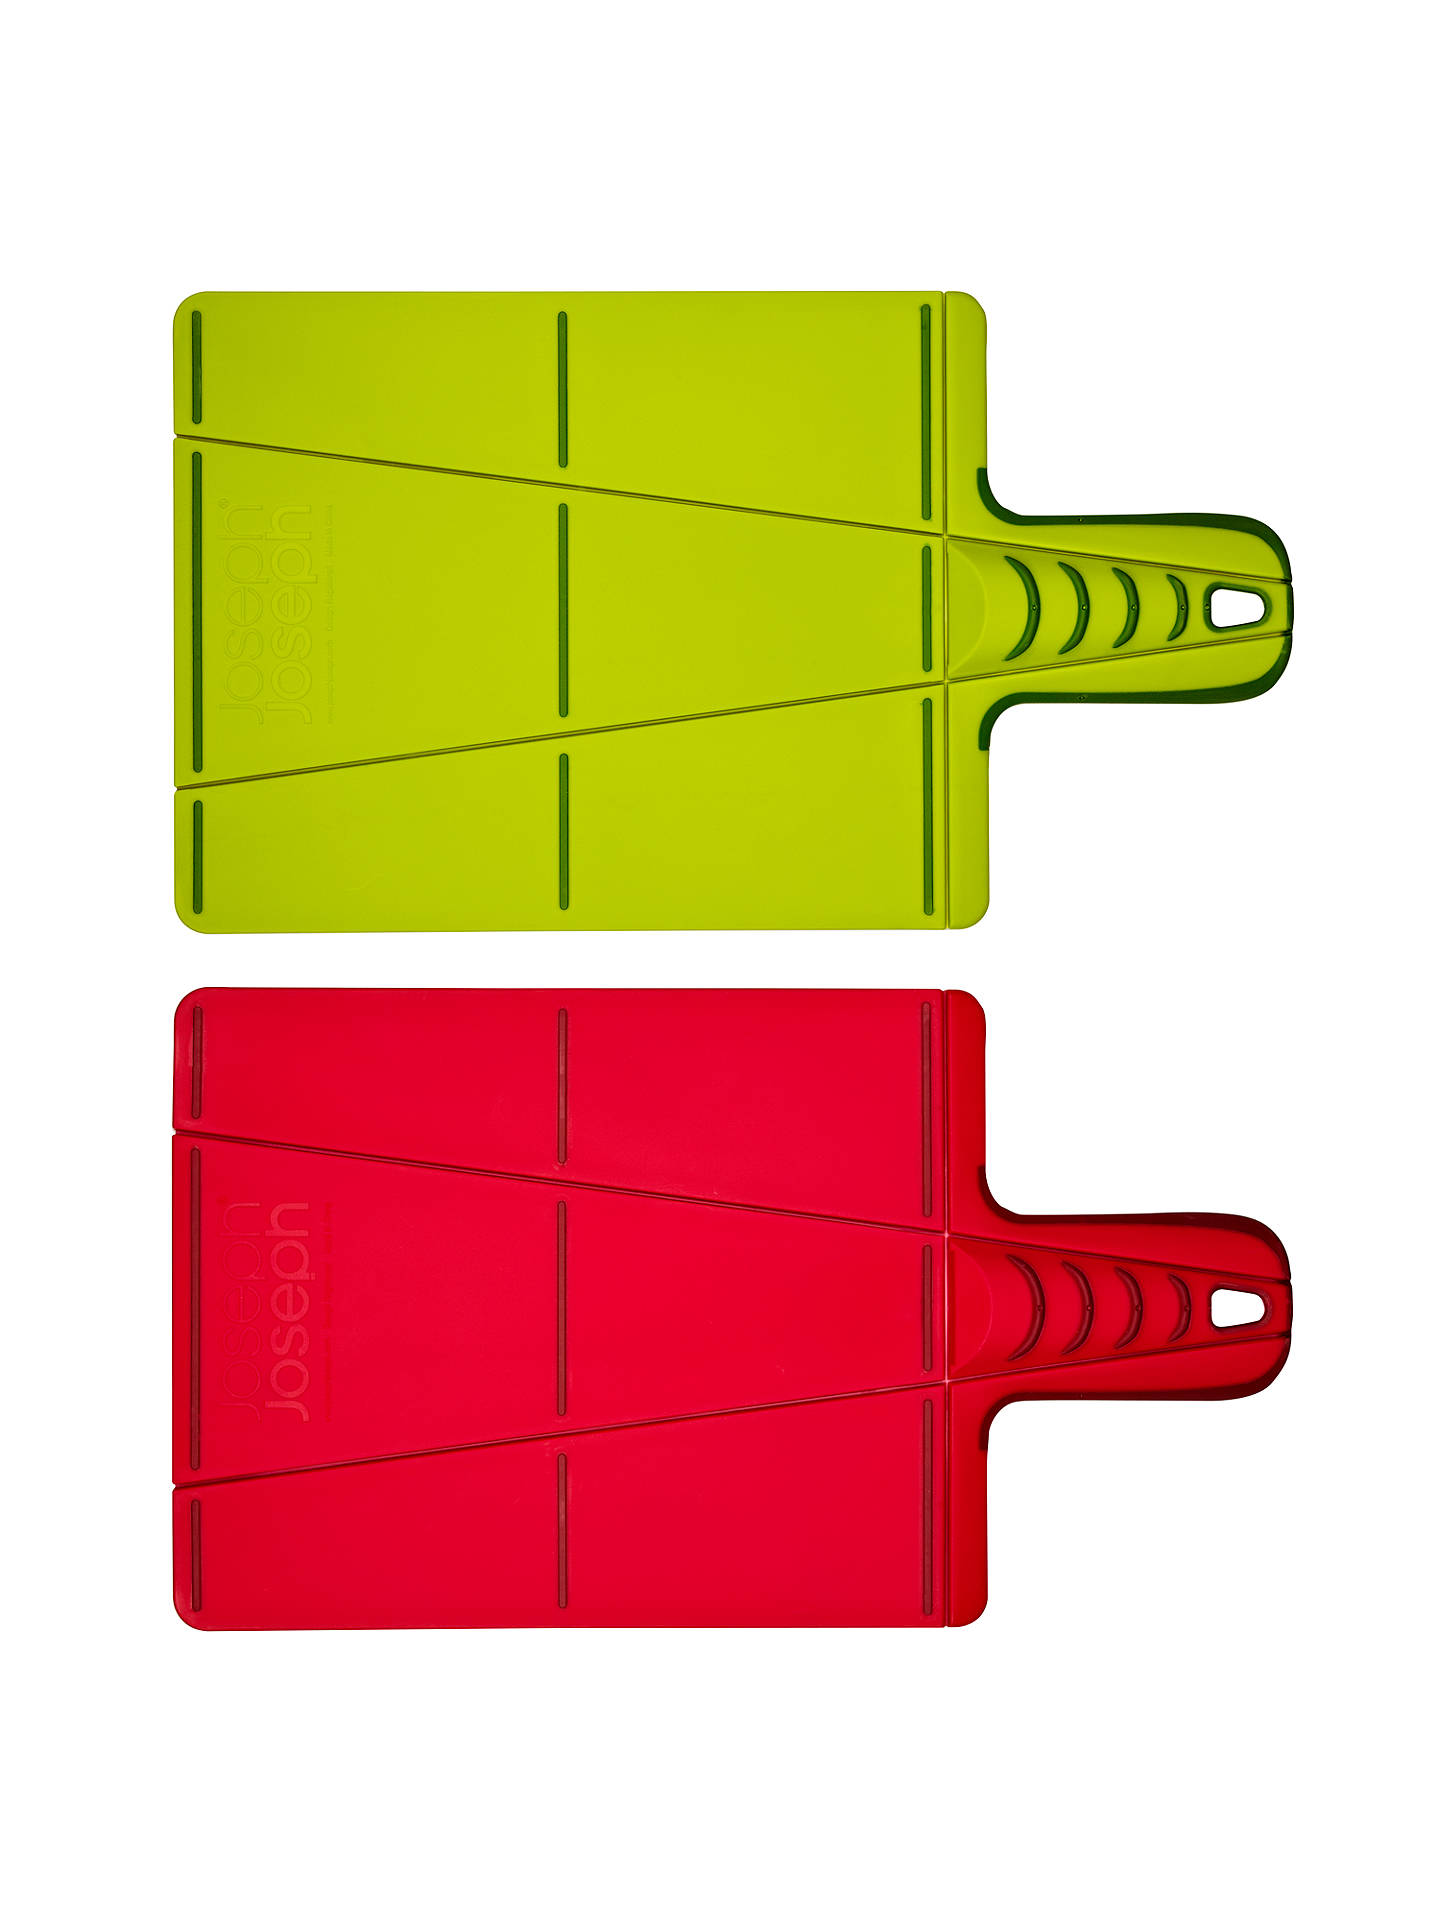 Buy Joseph Joseph Chop2Pot Plus Plastic Chopping Boards, Set of 2, Small Online at johnlewis.com